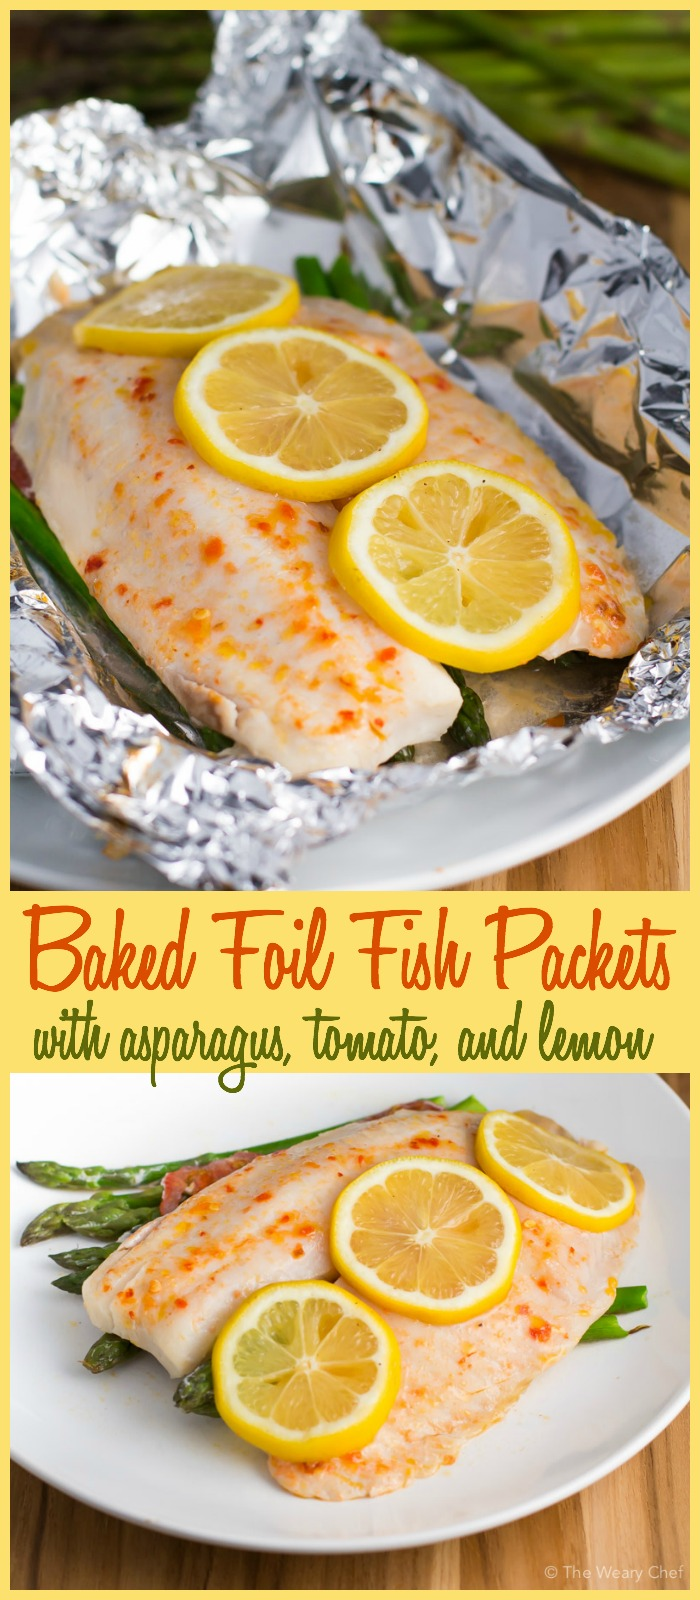 Baked fish recipes easy foil